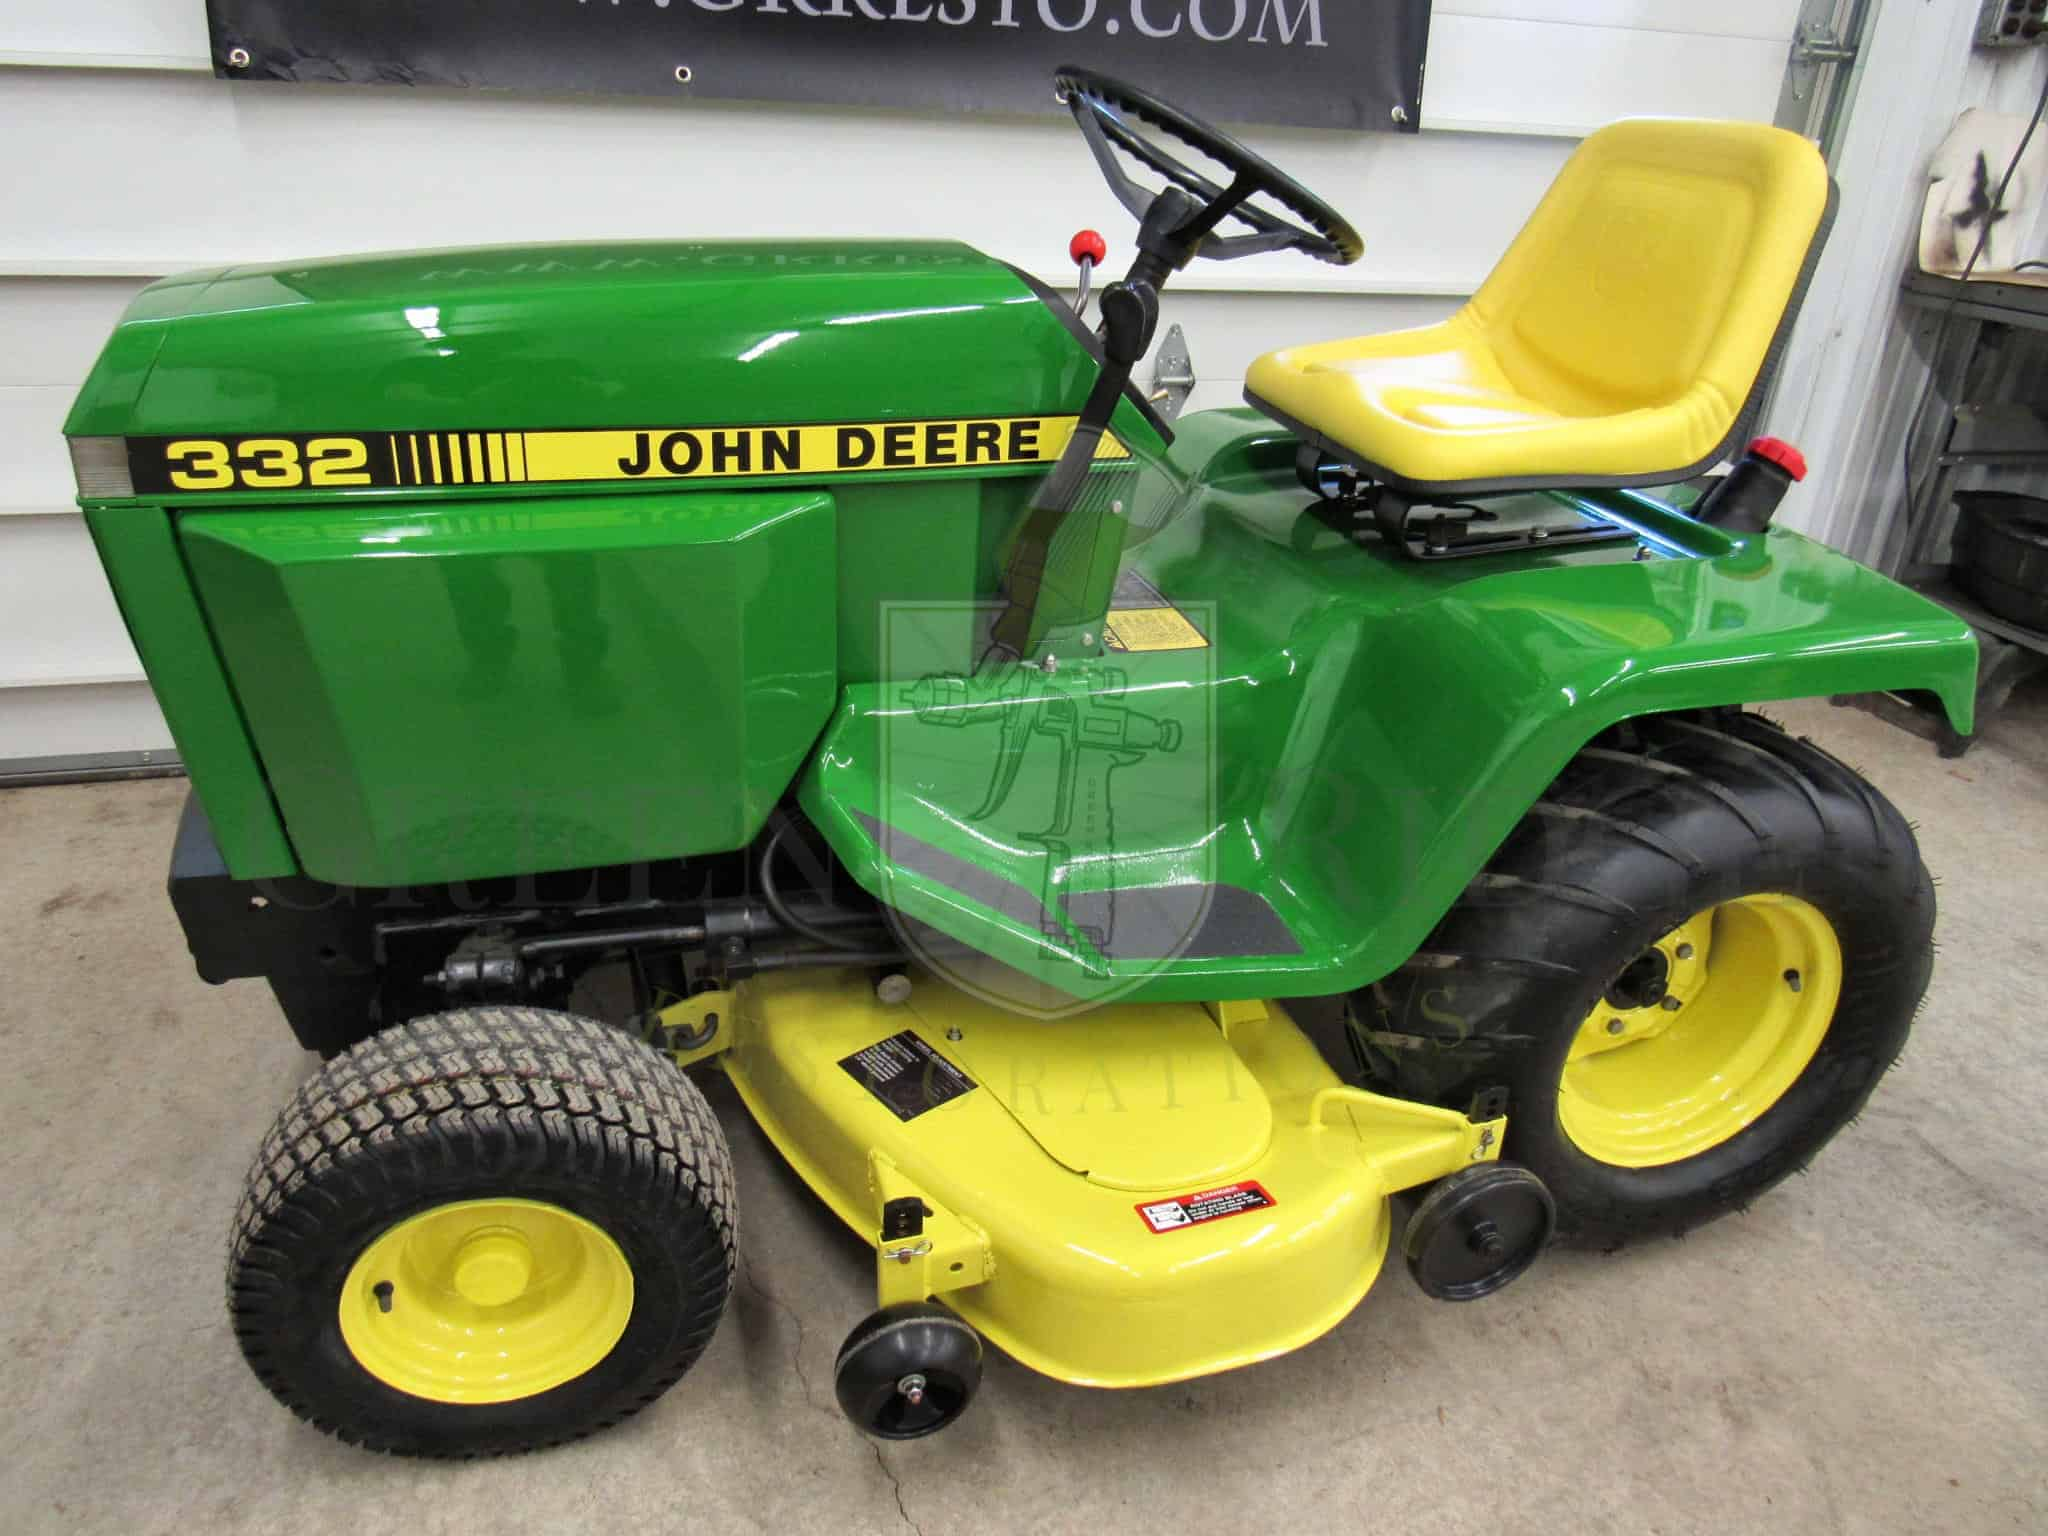 John Deere 332 >> John Deere 332 For Sale 1987 Lawn And Garden Tractor In New York